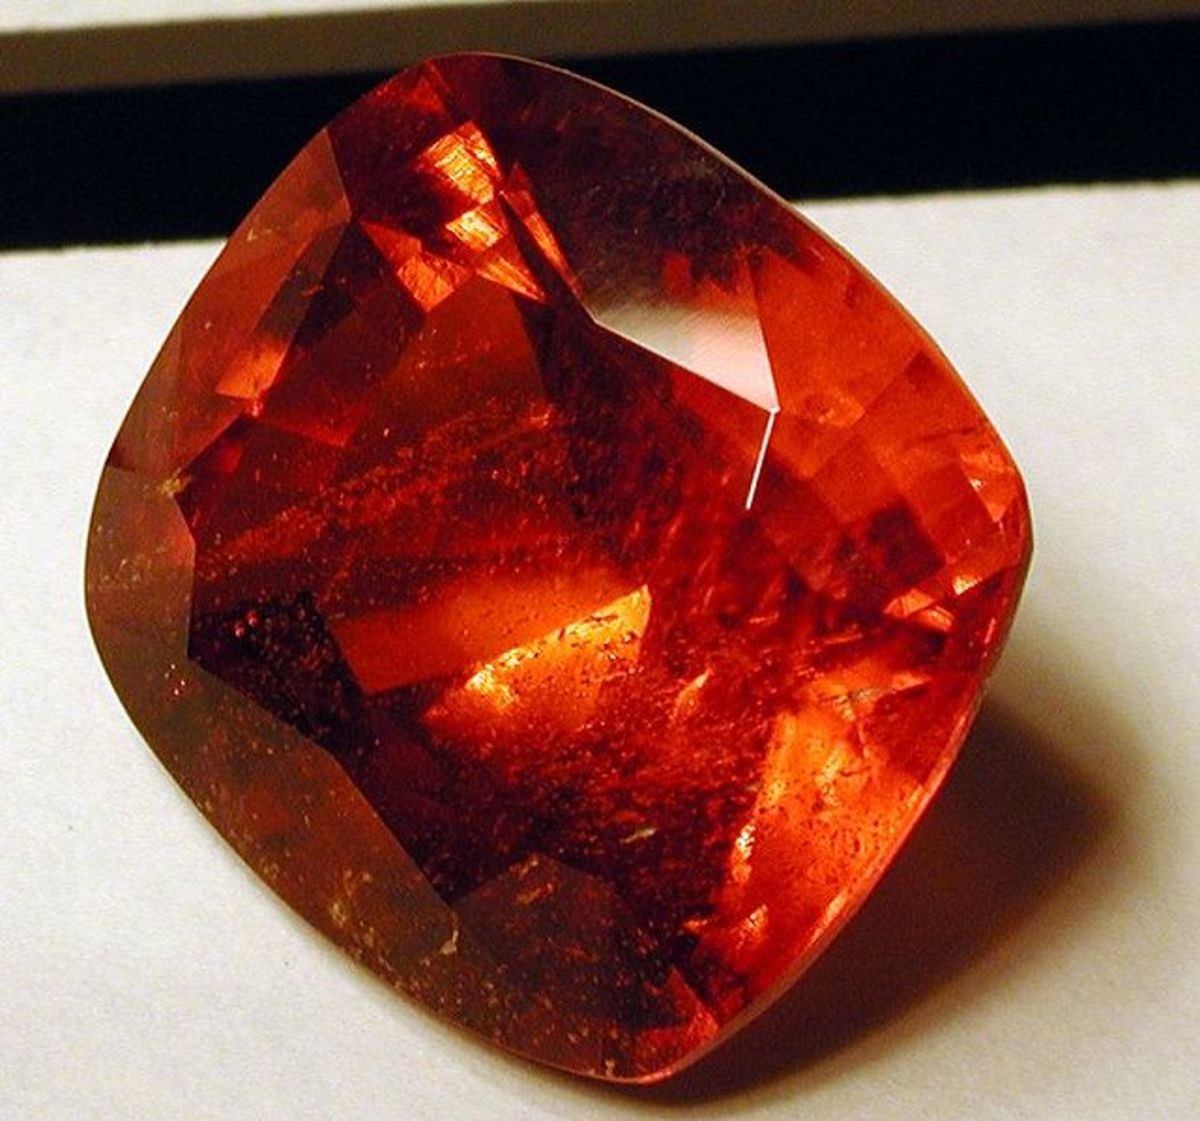 A gorgeous red gemstone.